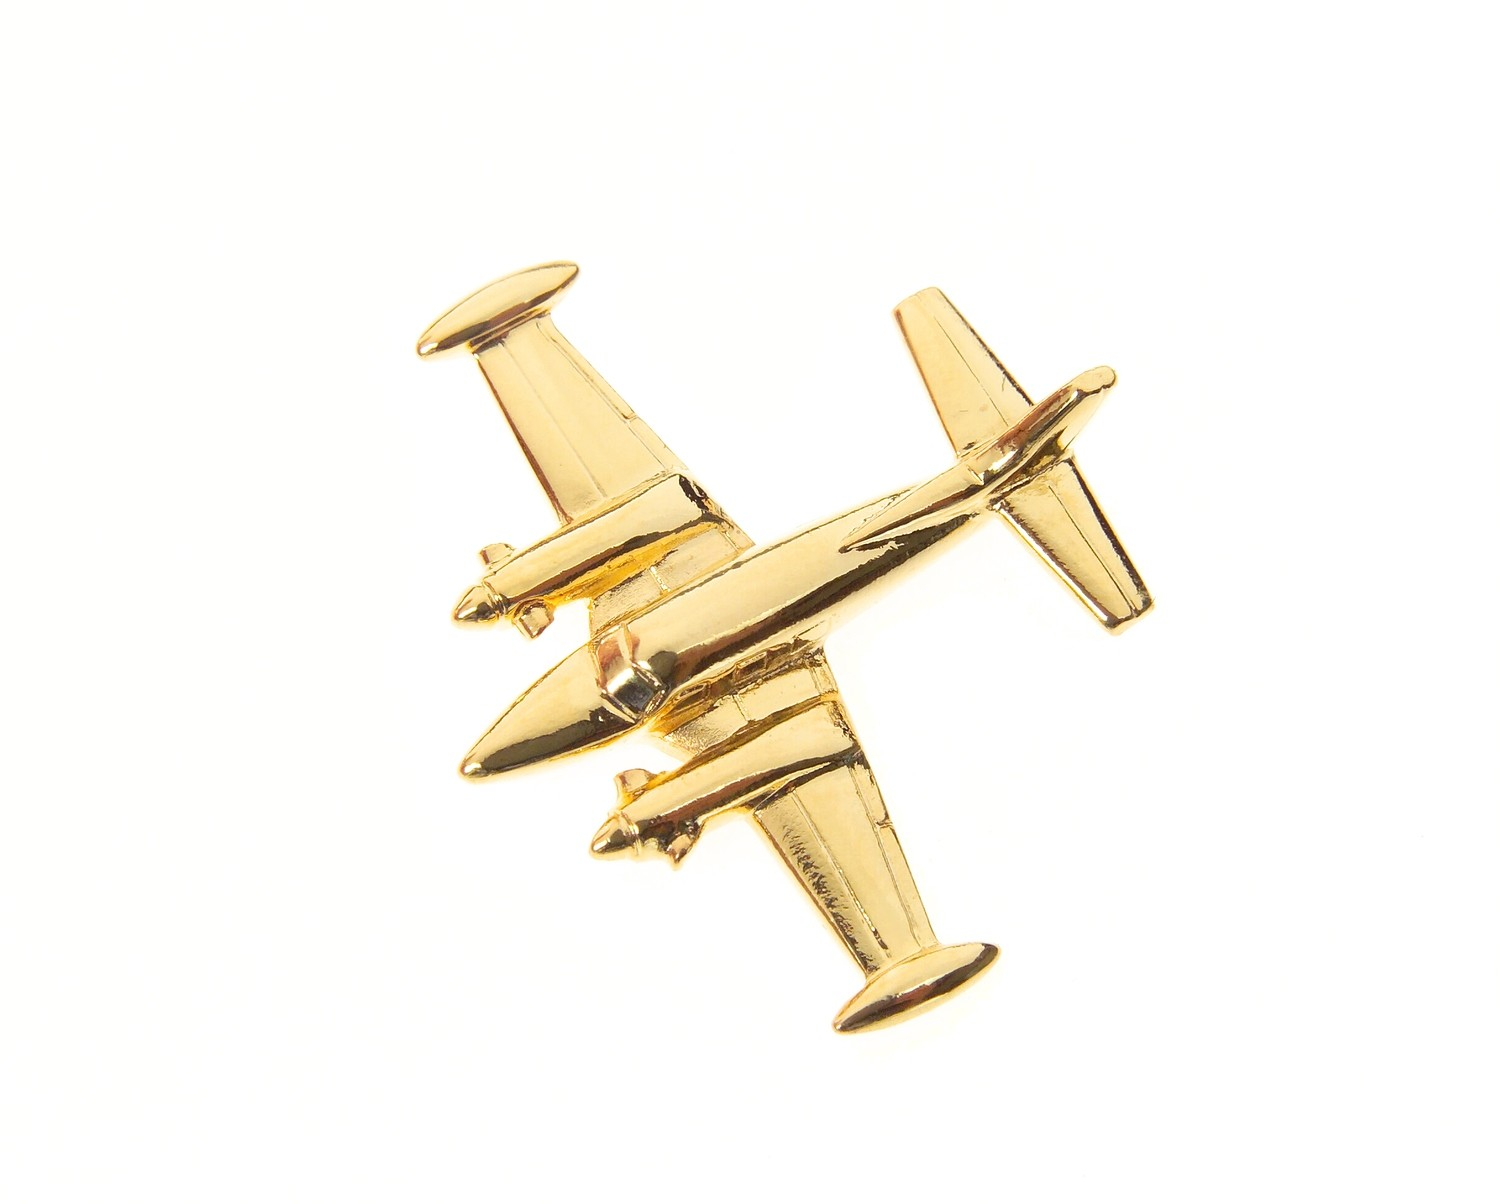 Piper Cheyenne Gold Plated Tie / Lapel Pin